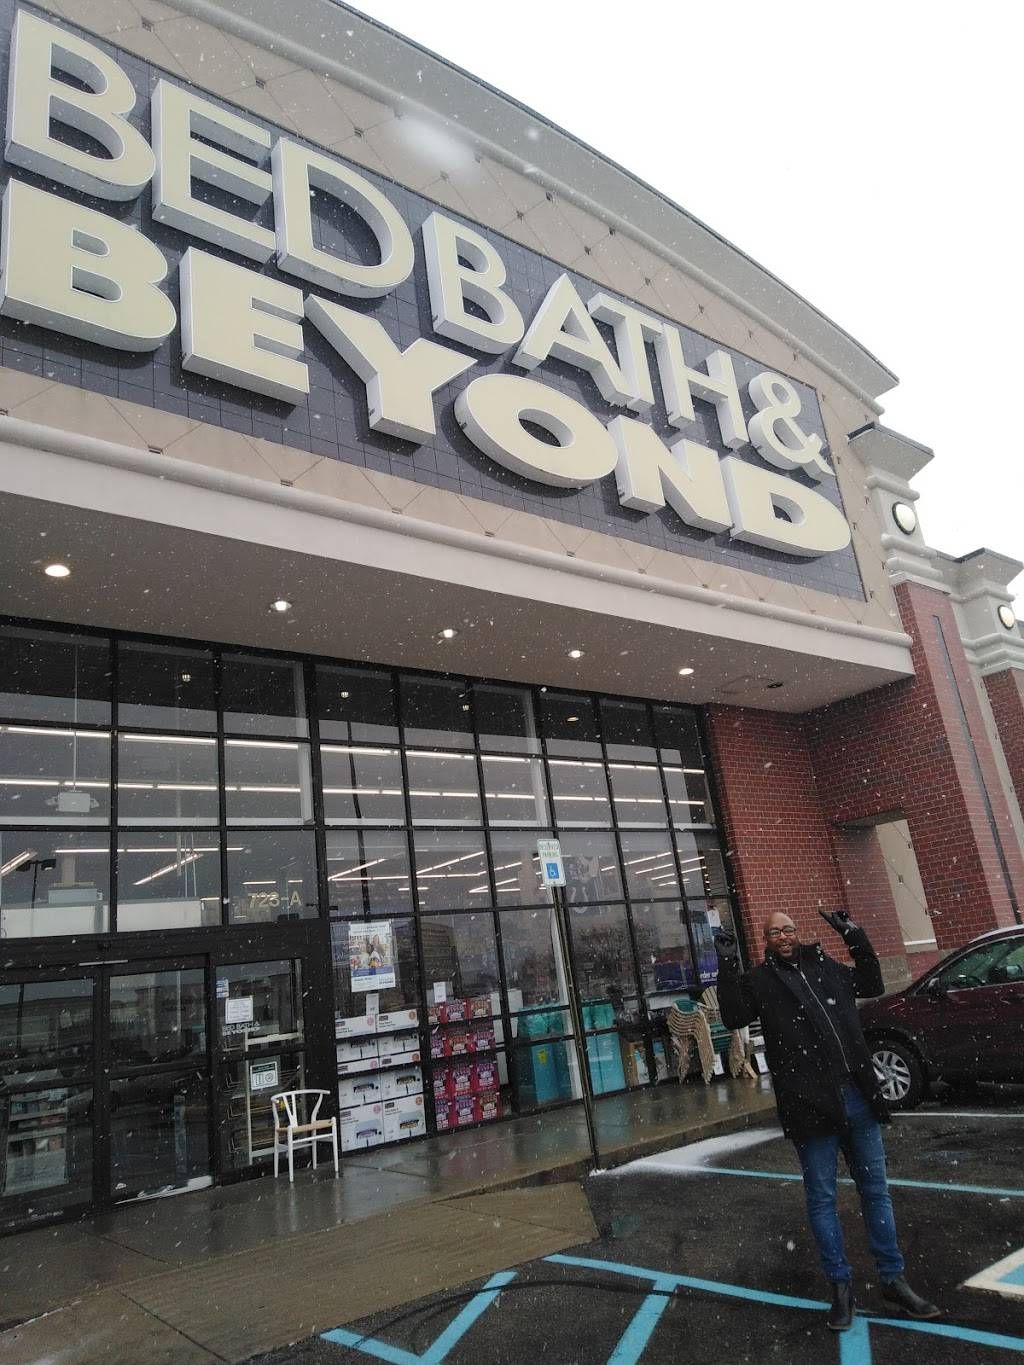 Bed Bath & Beyond - department store  | Photo 1 of 9 | Address: 723 U.S. 31 North, Ste A, Greenwood, IN 46142, USA | Phone: (317) 882-7860